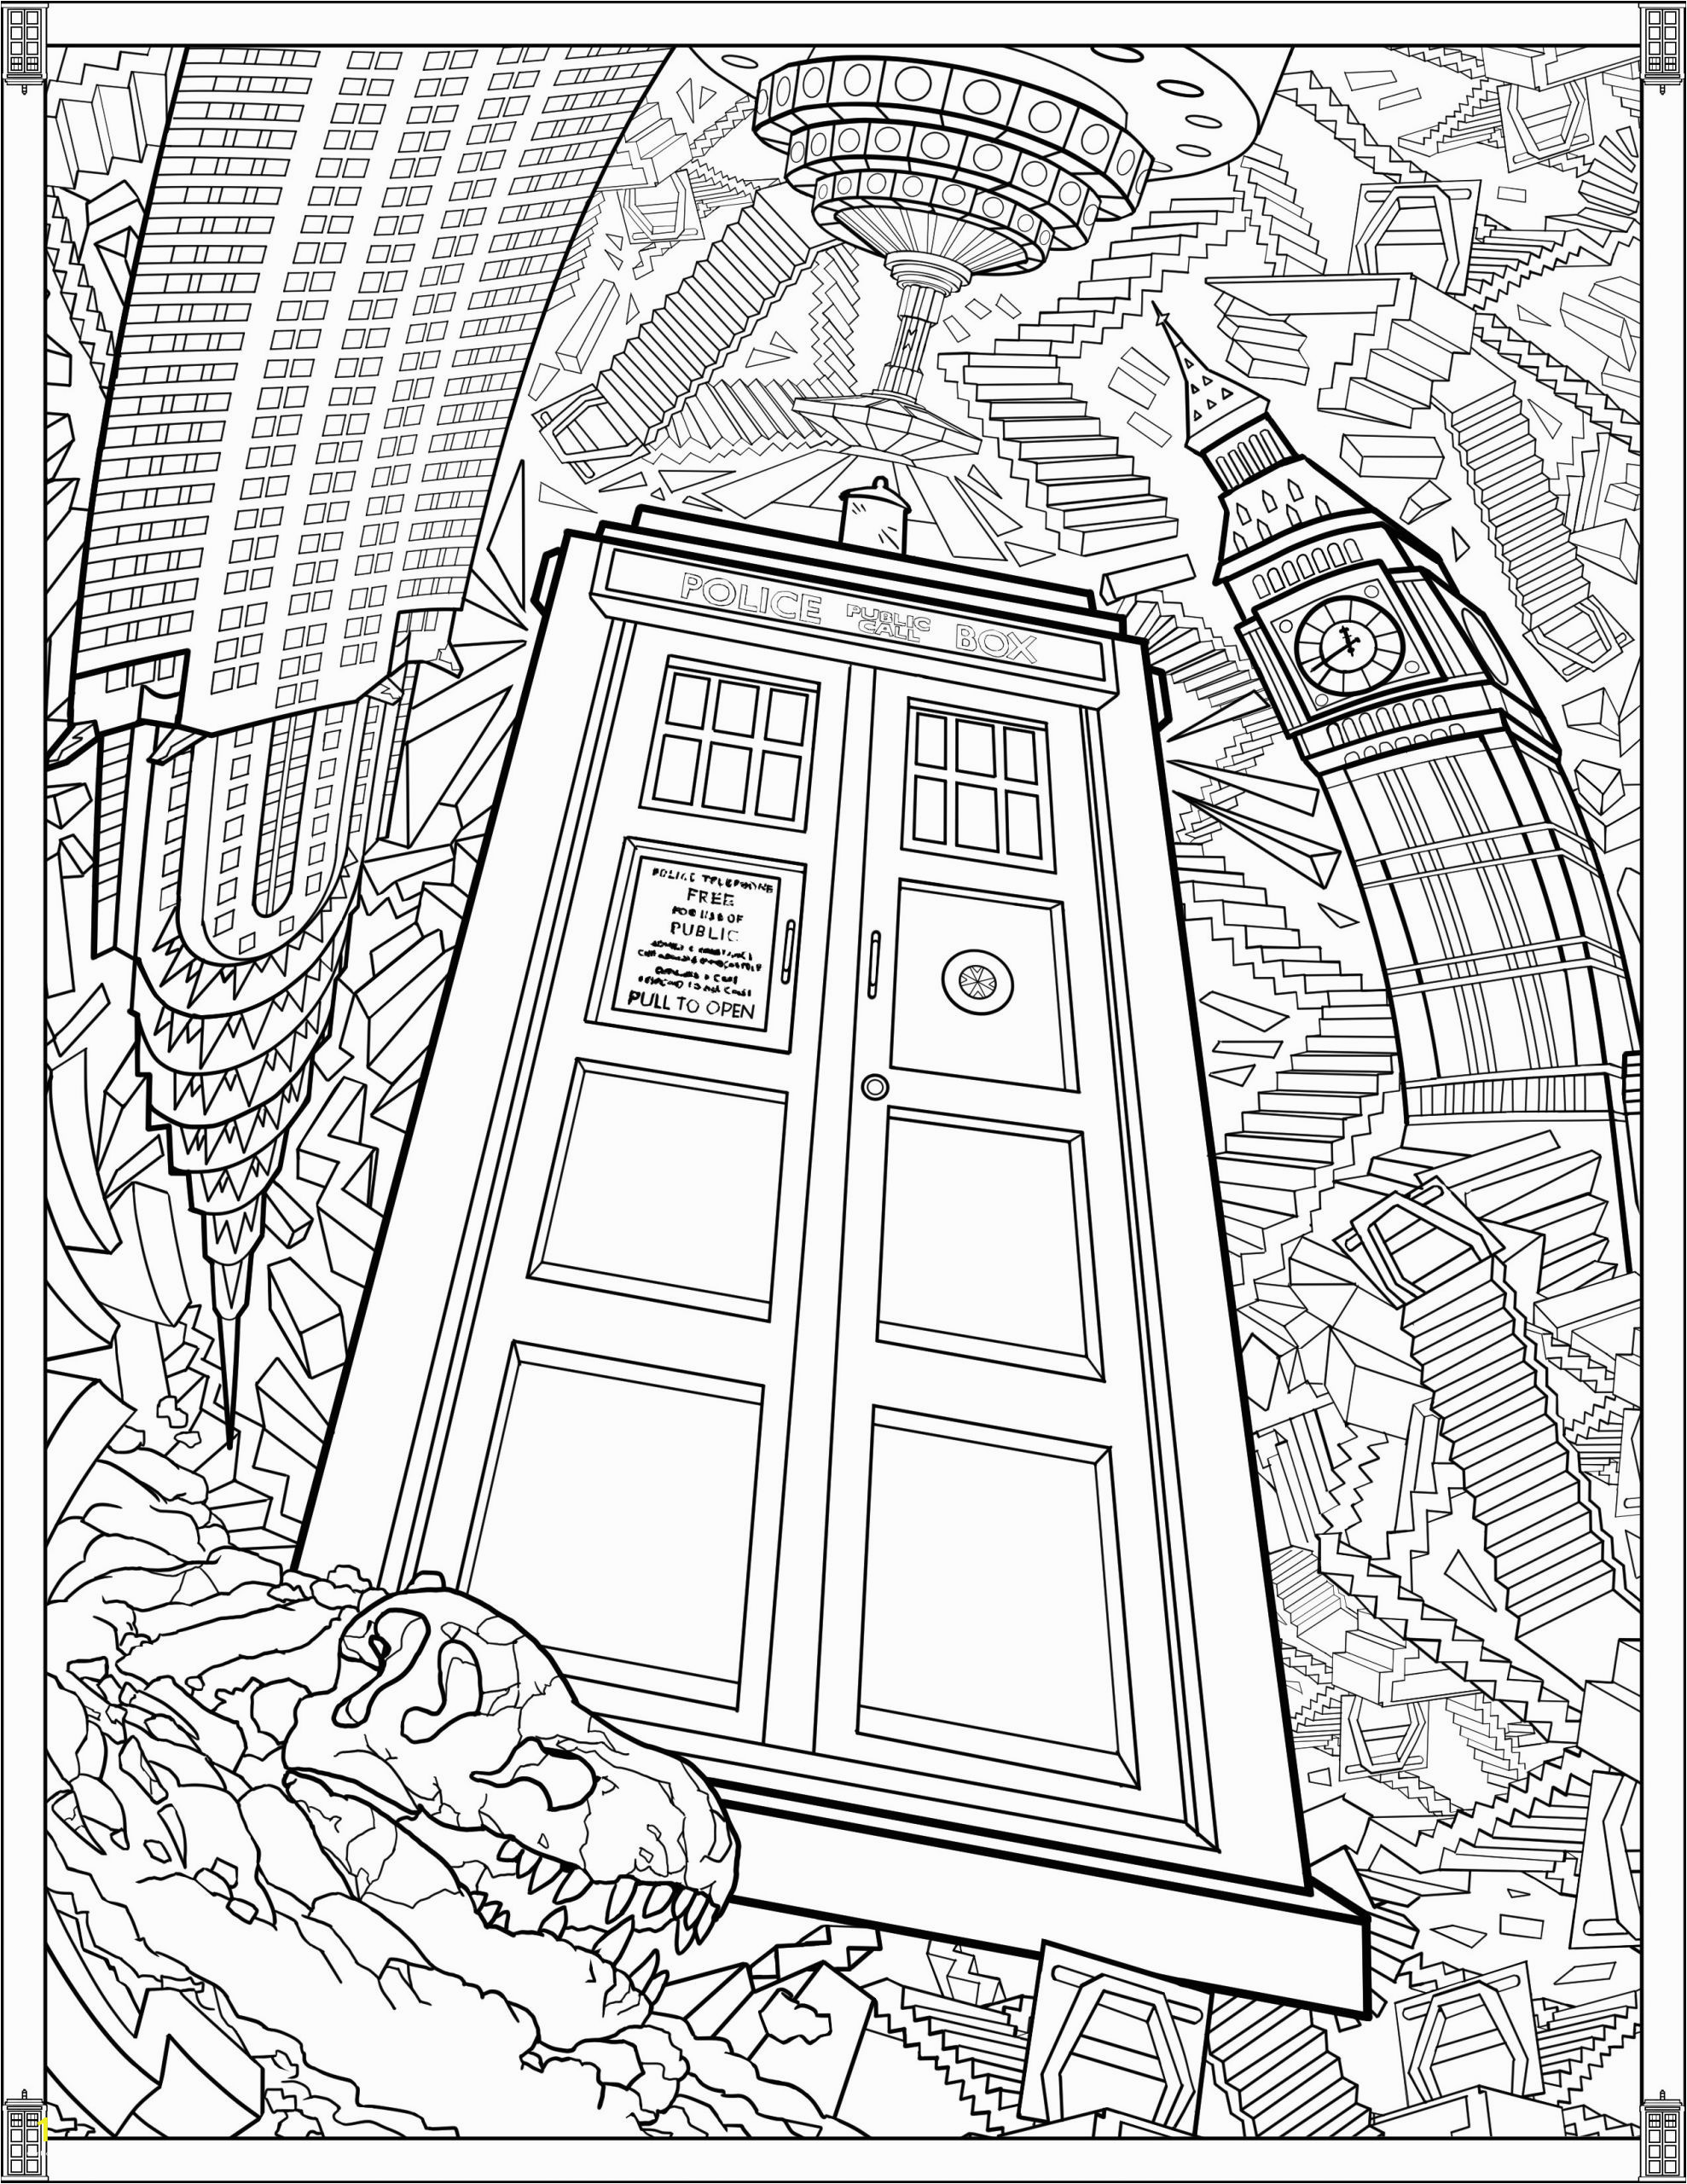 print off coloring pages for adults best of doctor who wibbly wobbly timey wimey coloring pages of print off coloring pages for adults scaled